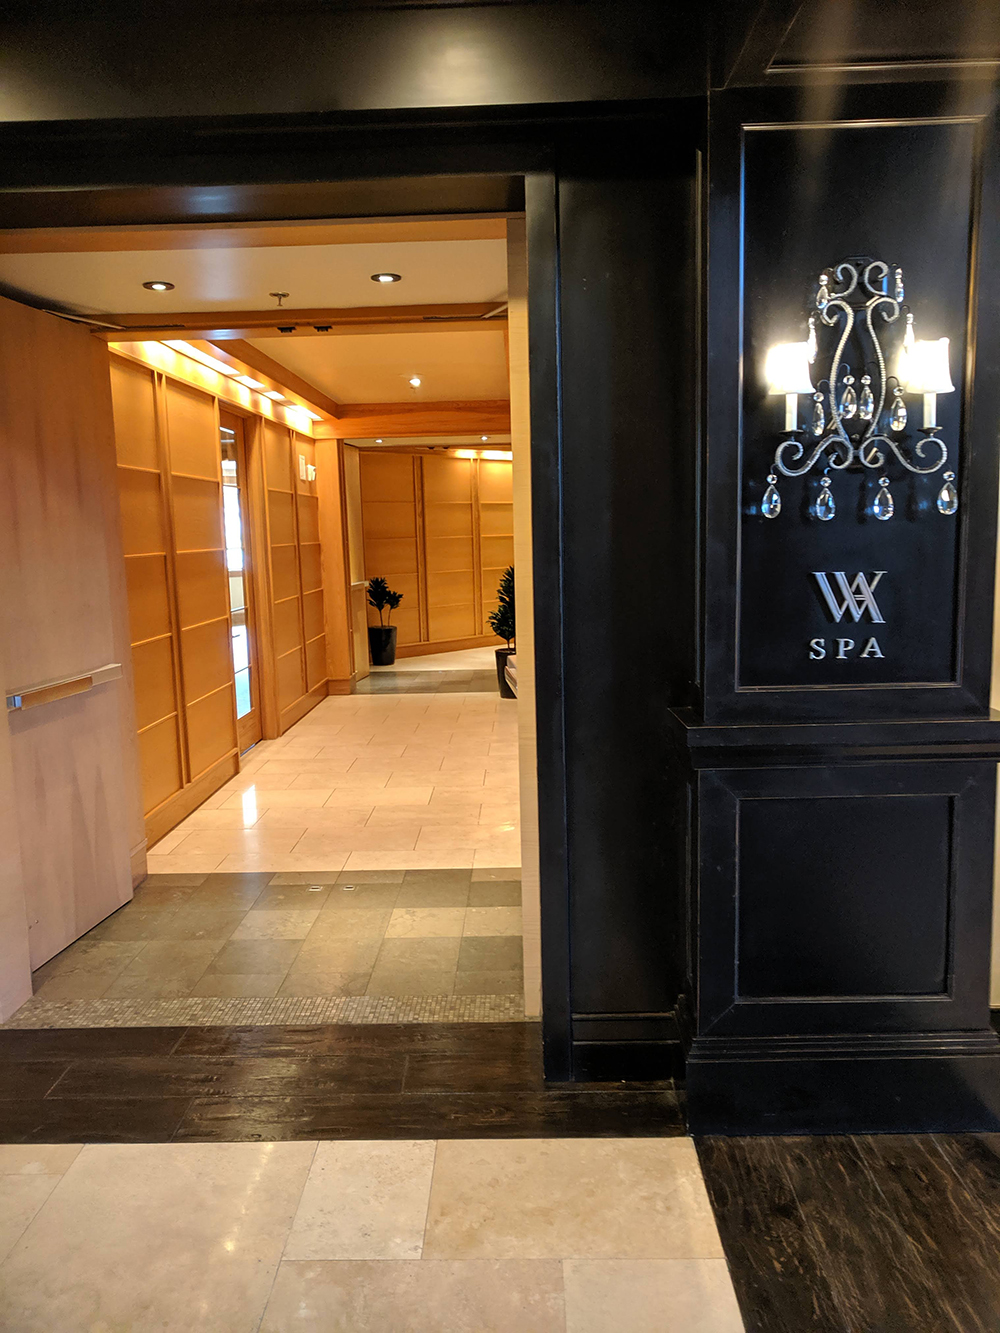 A hallway of warm wood welcomes guests to the spa.